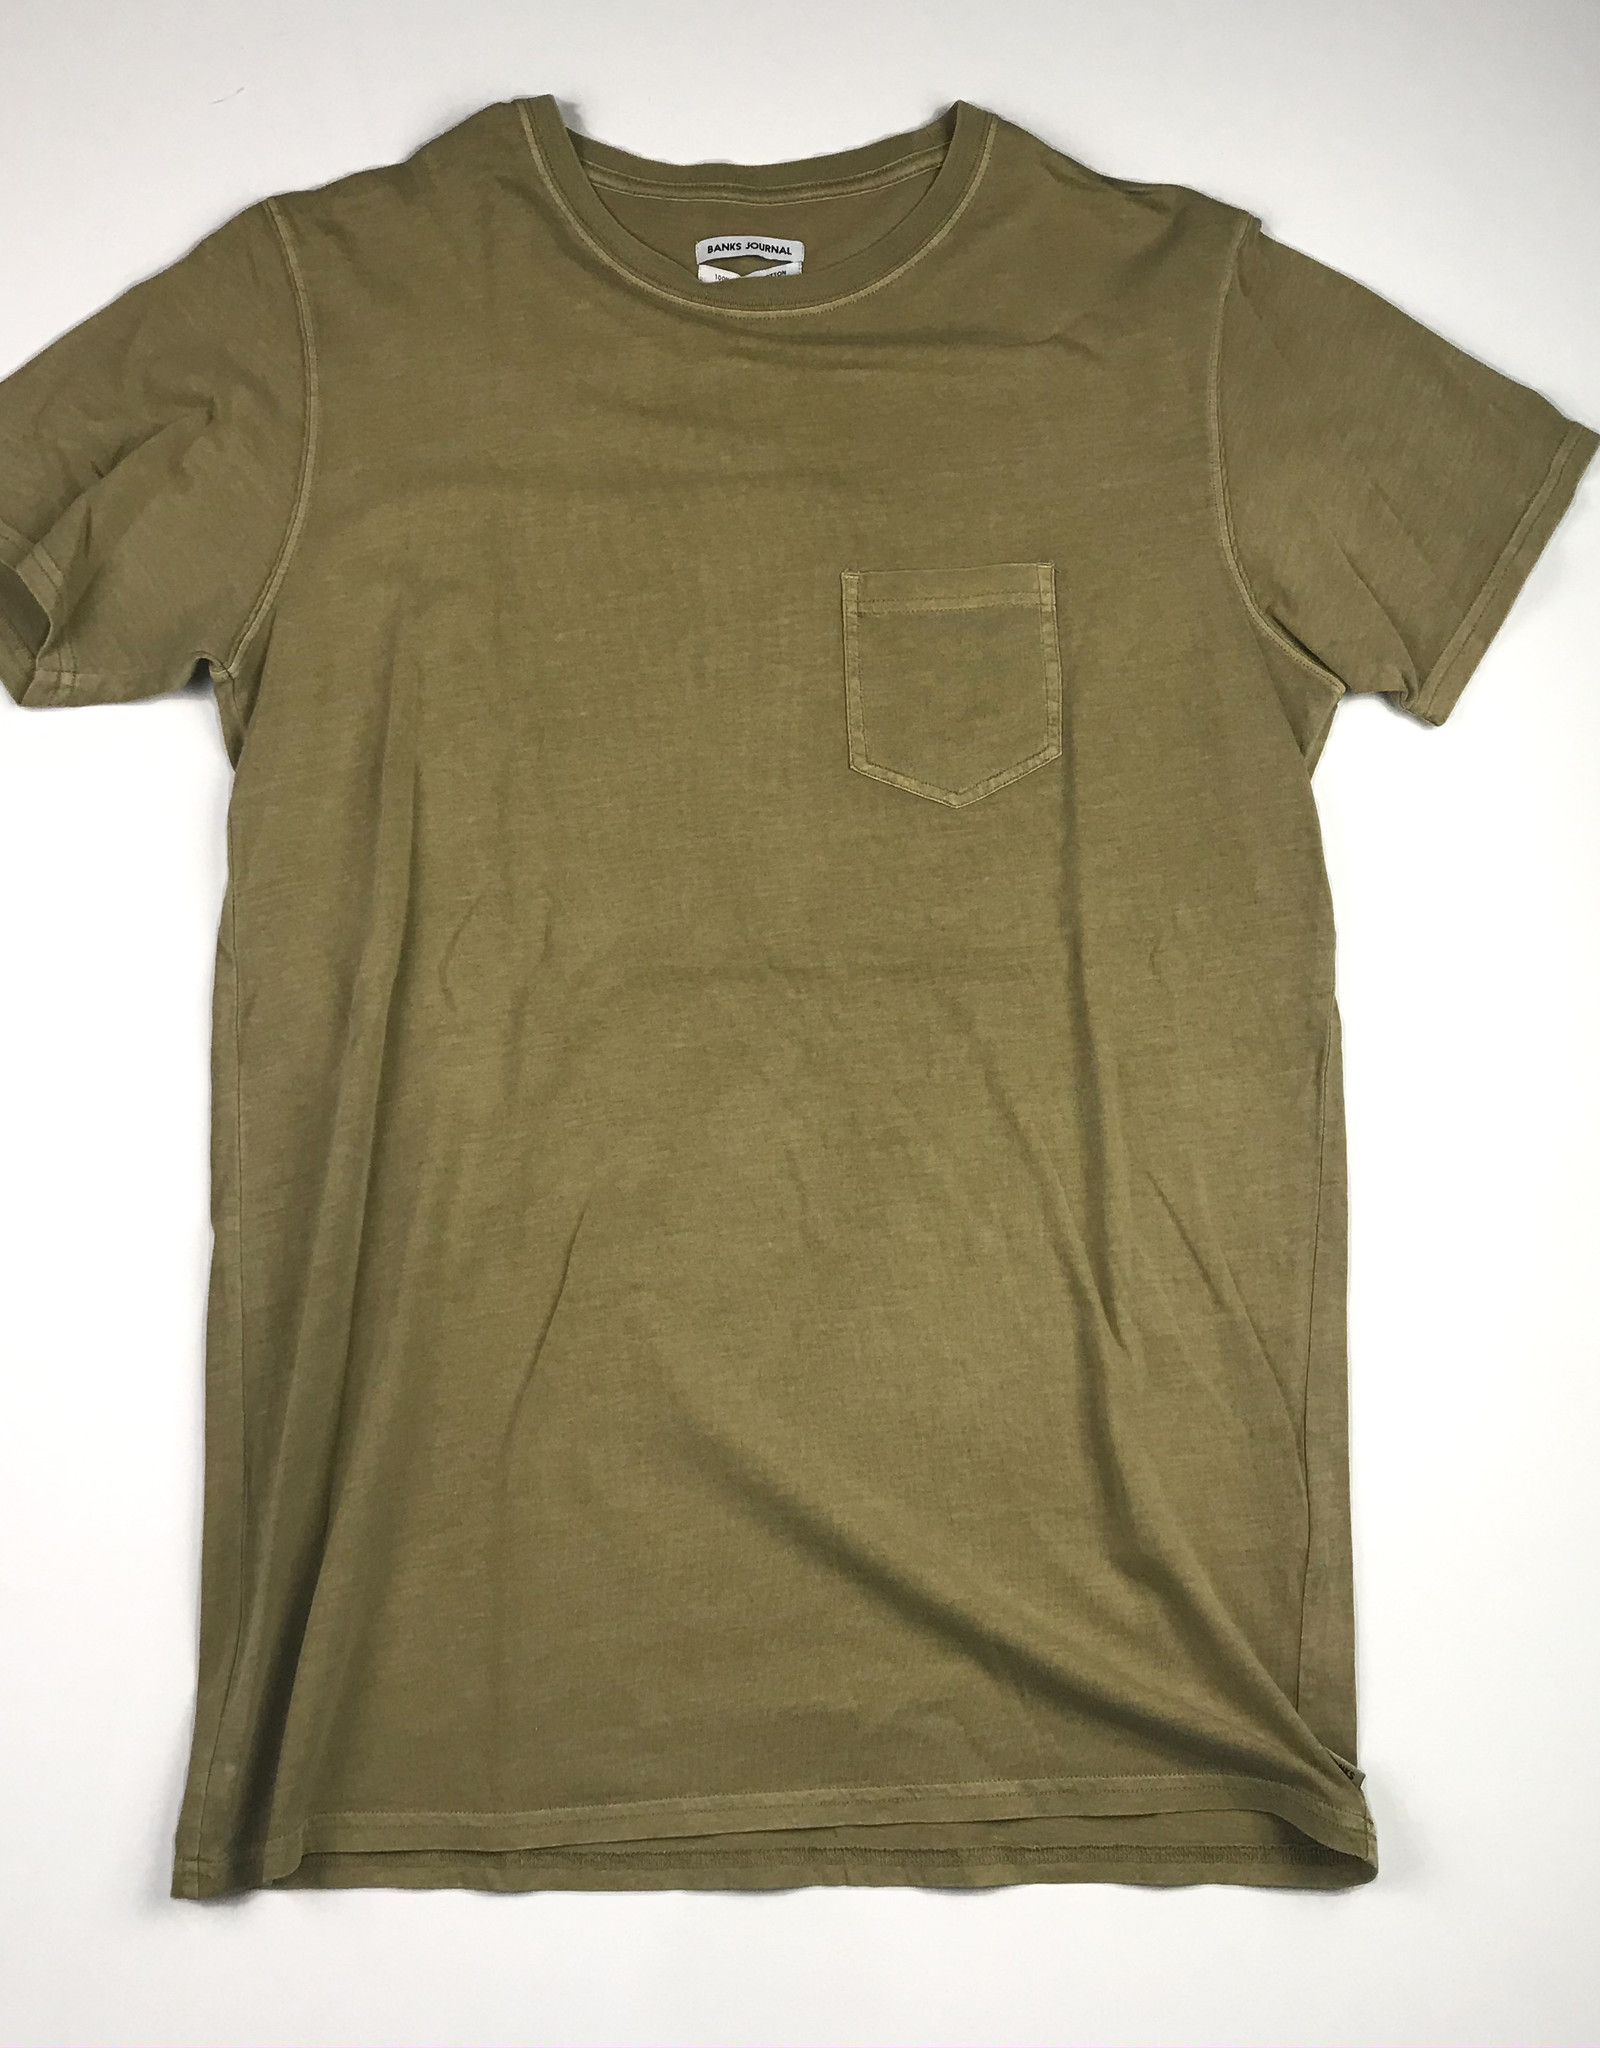 BANKS JOURNAL PRIMARY FADED S/S TEE - SAND - MEDIUM